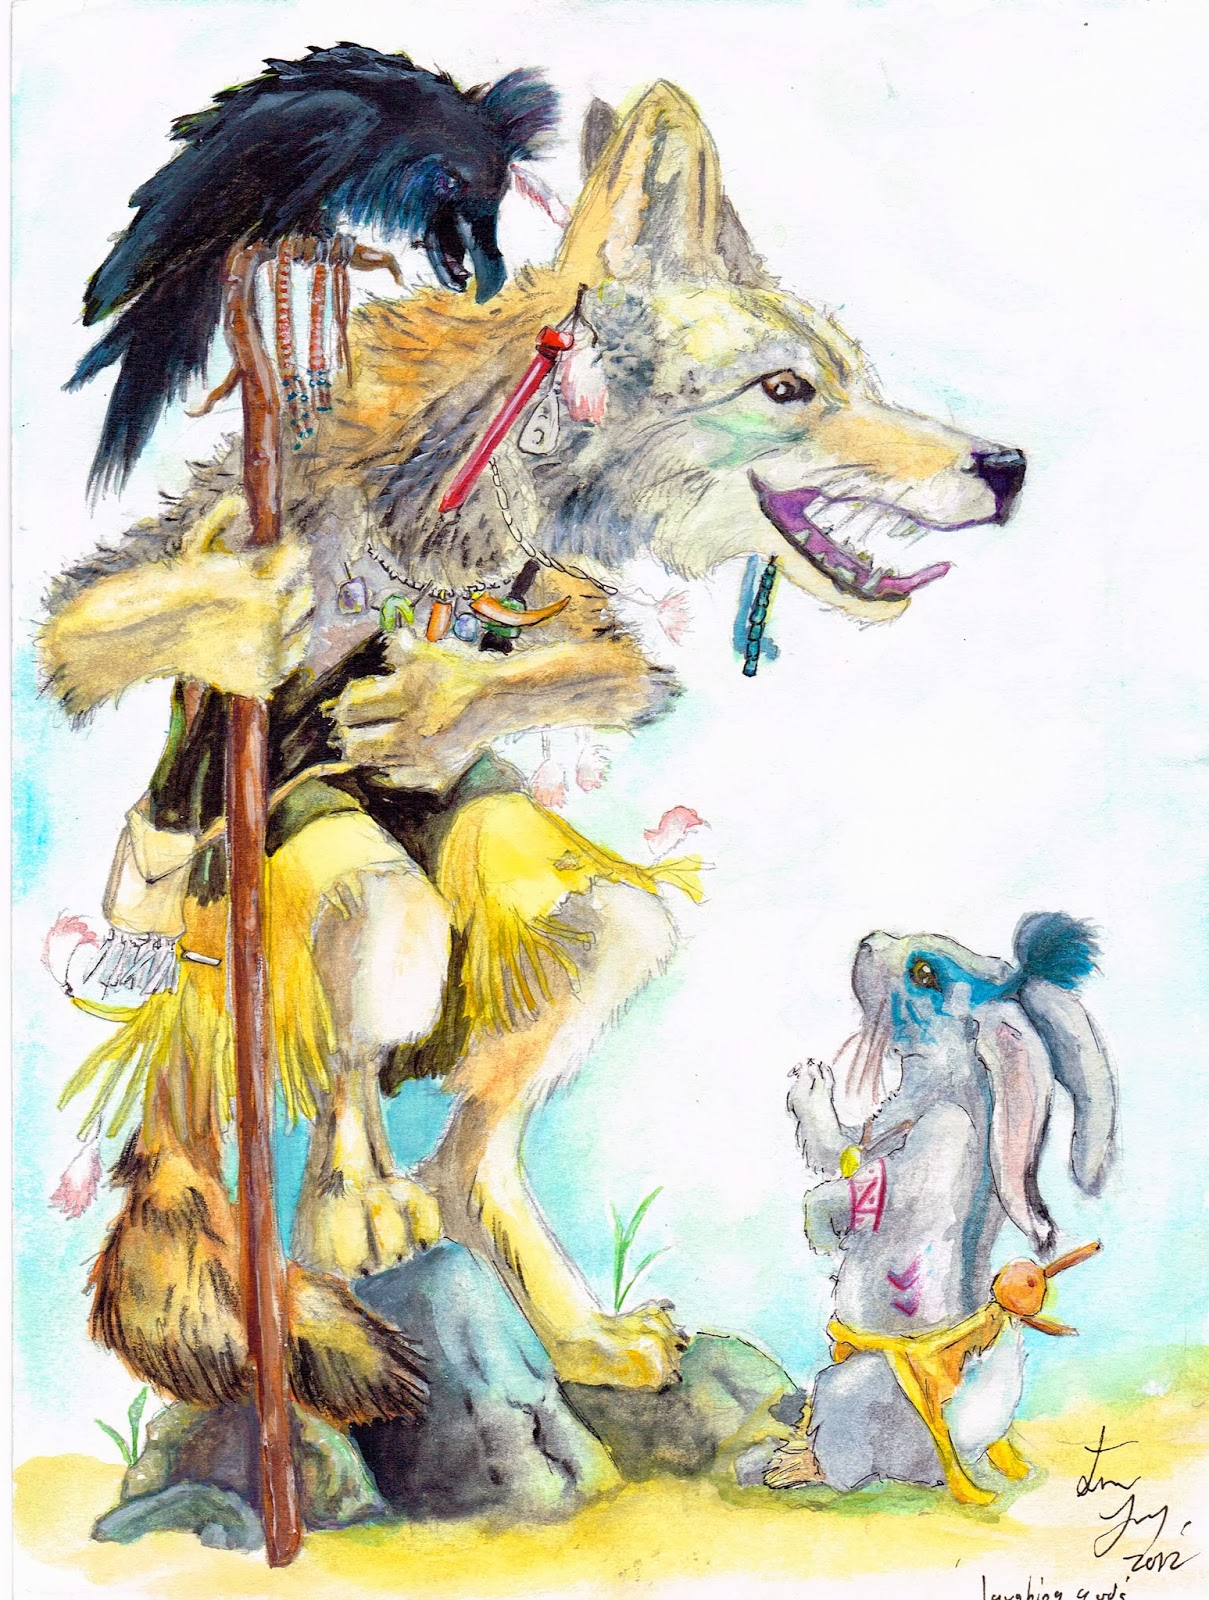 Drawn raven trickster Coyote Ravens & trickster Rabbit